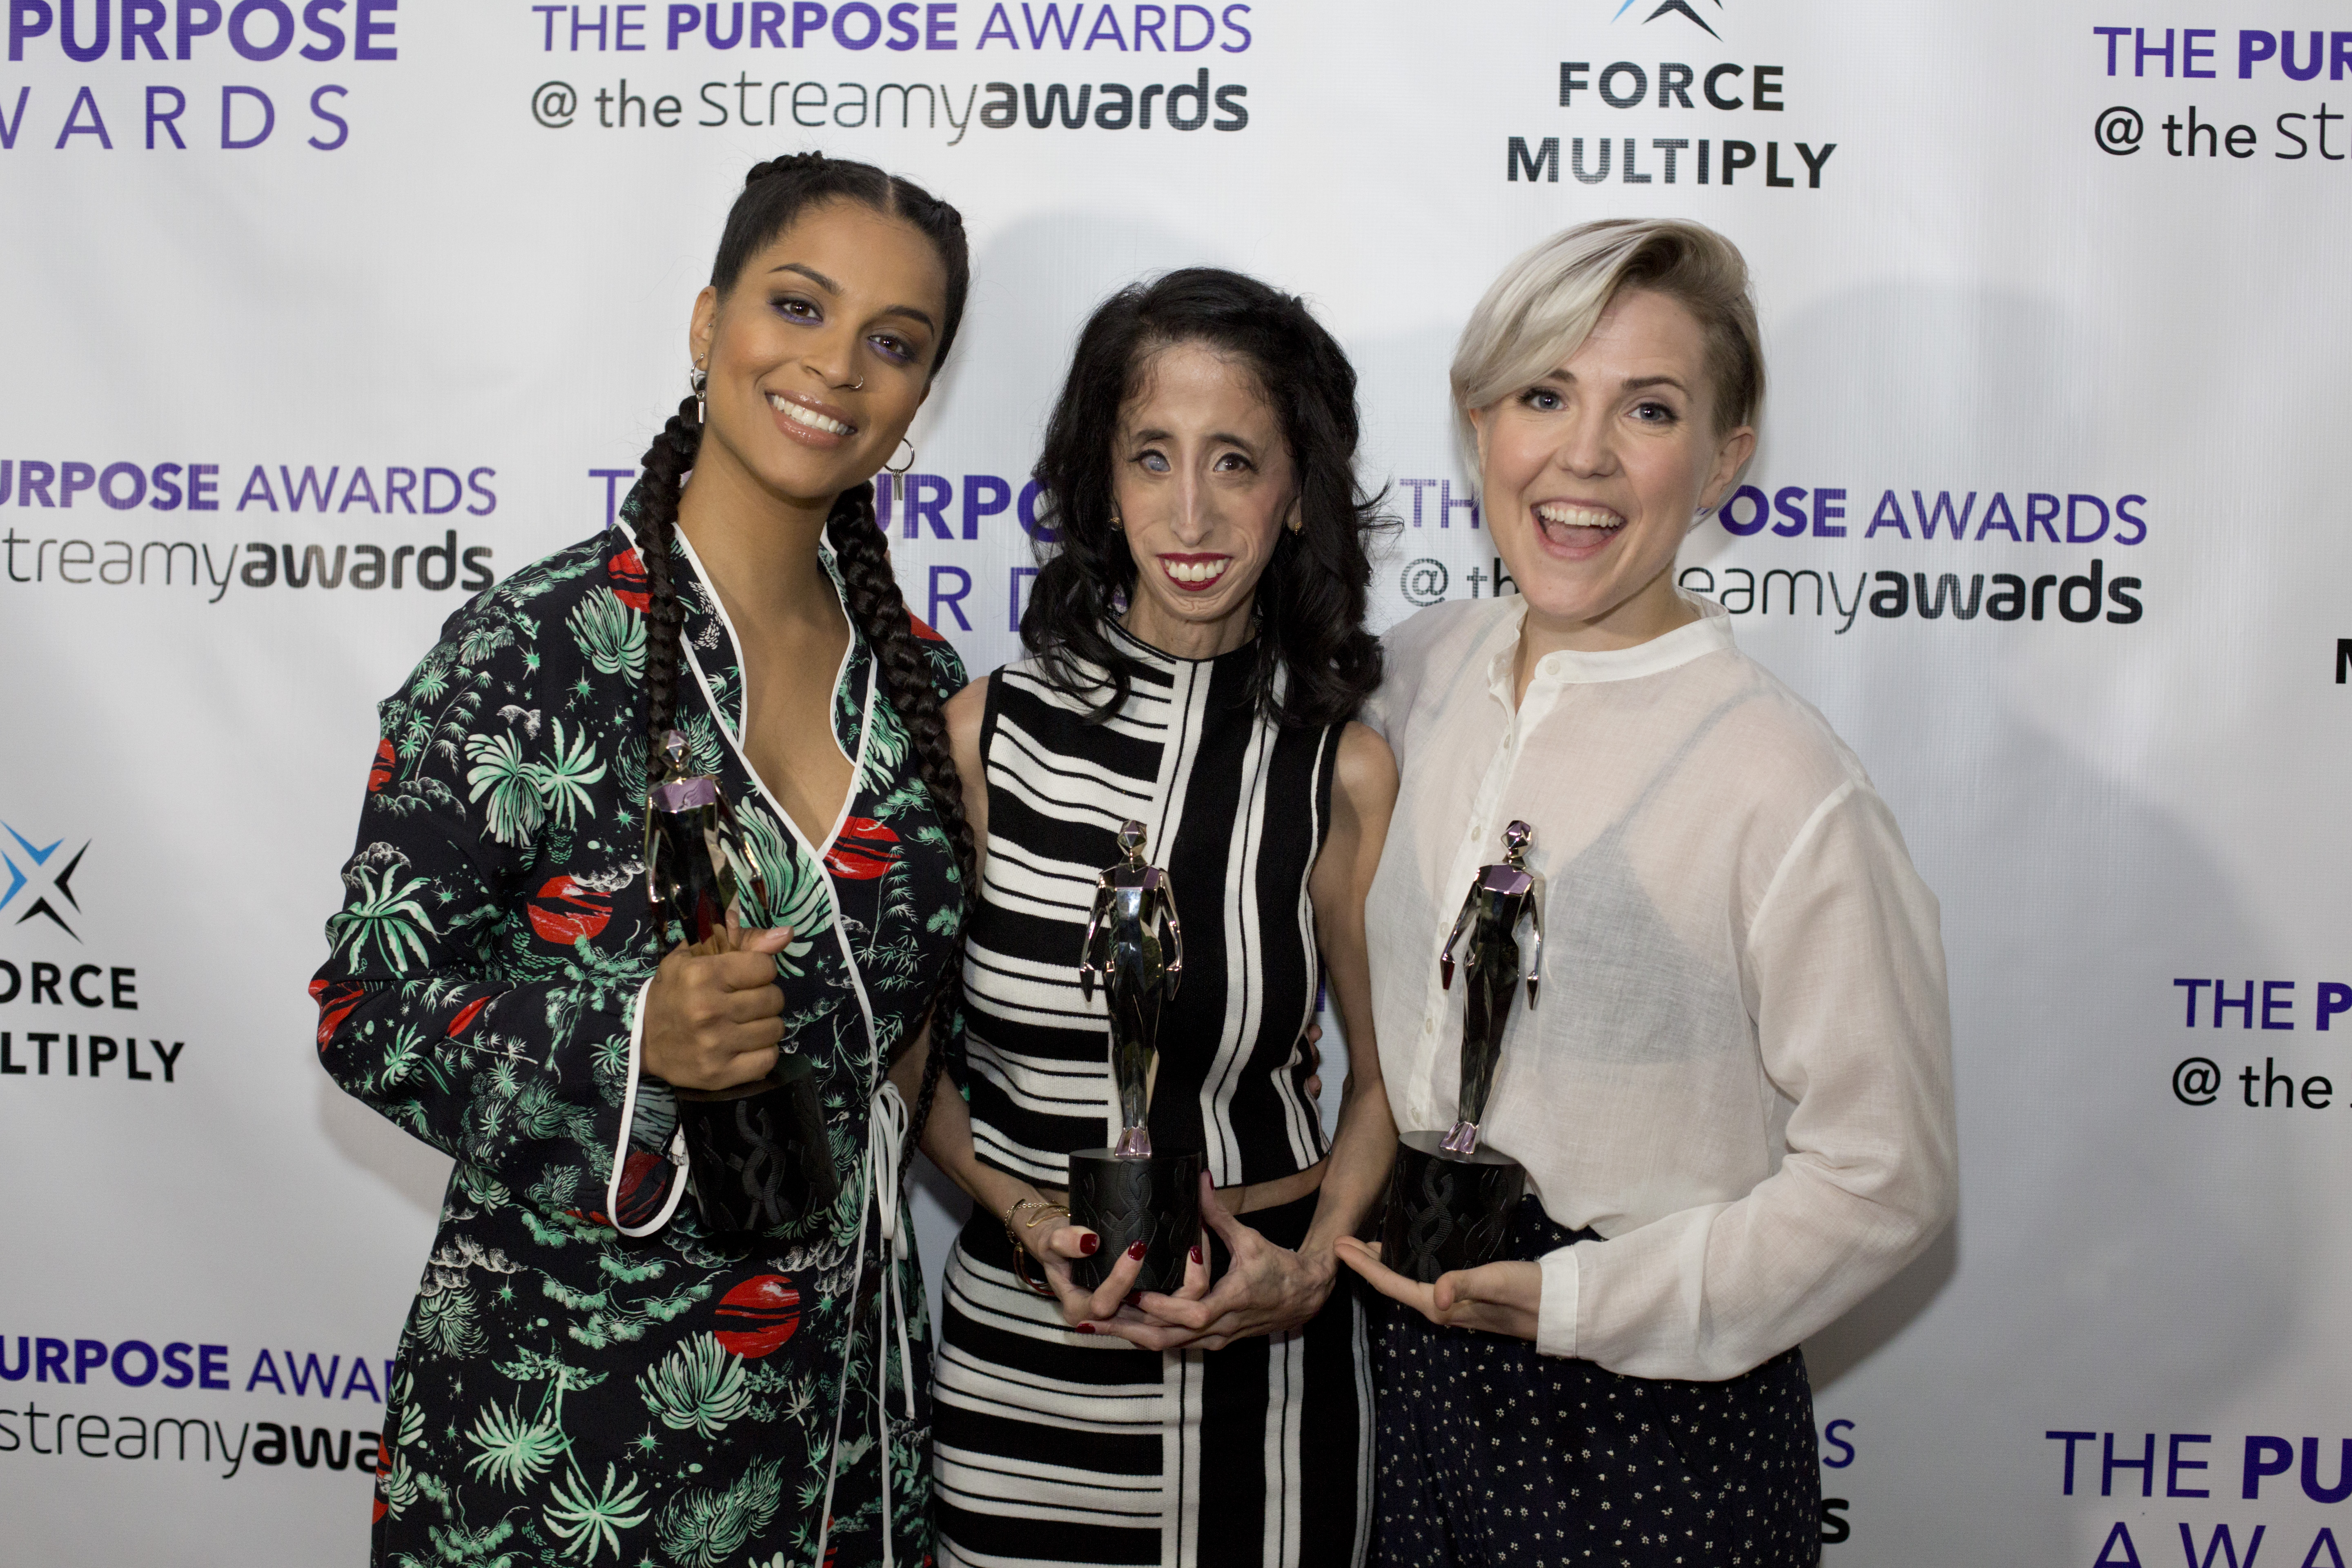 Picture shows Lilly Singh, Lizzy Velasquez and Hannah Hart, at the Purpose Awards @thestreamys, LA Live in Downtown Los Angeles.